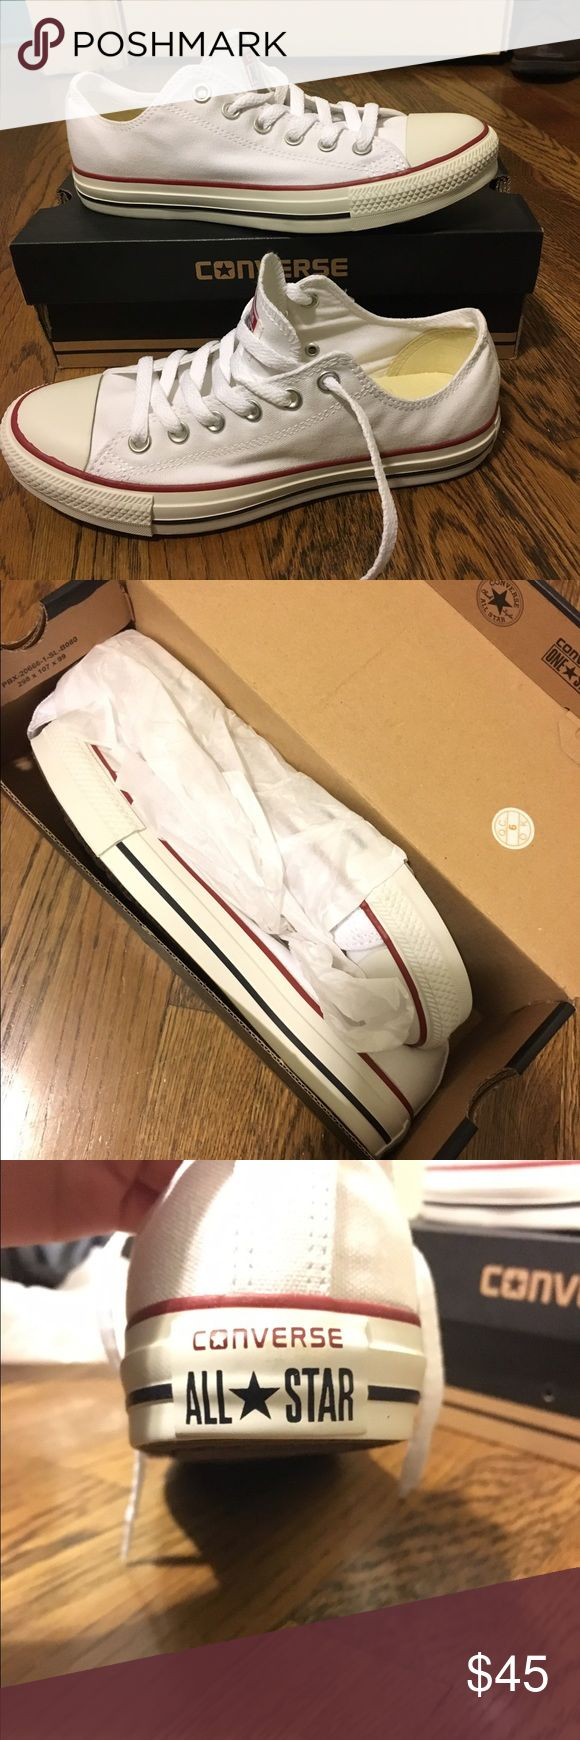 White Low Rise Converse- New in Box! Never worn- still in original box wrapped in tissue. They're just not my style, I need to get them to someone who will wear them and love them! Mens' 6.5, womens' 8.5. They will ship in original box. Make an offer! Converse Shoes Sneakers